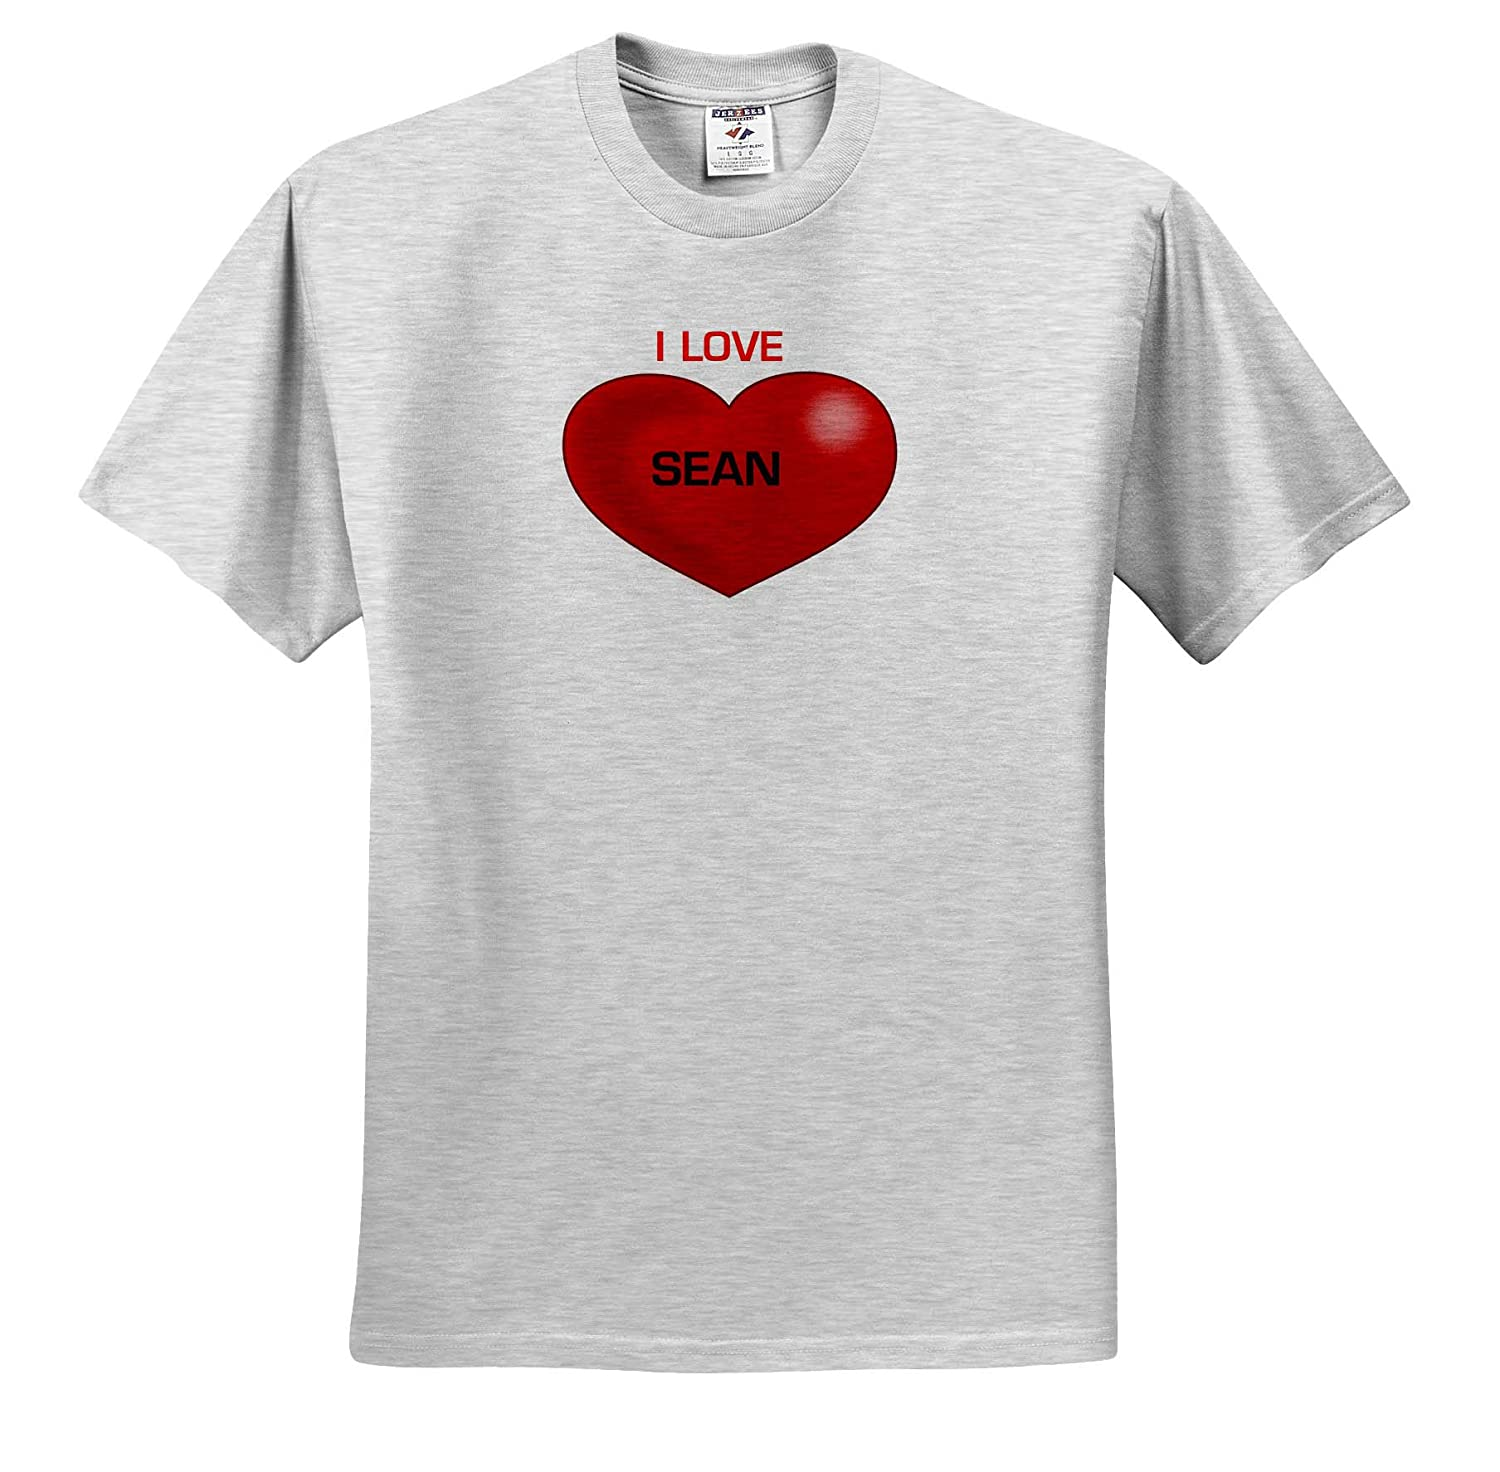 T-Shirts Love Hearts with Names 3dRose Lens Art by Florene Image of Sean I Love You with Giant Red Heart